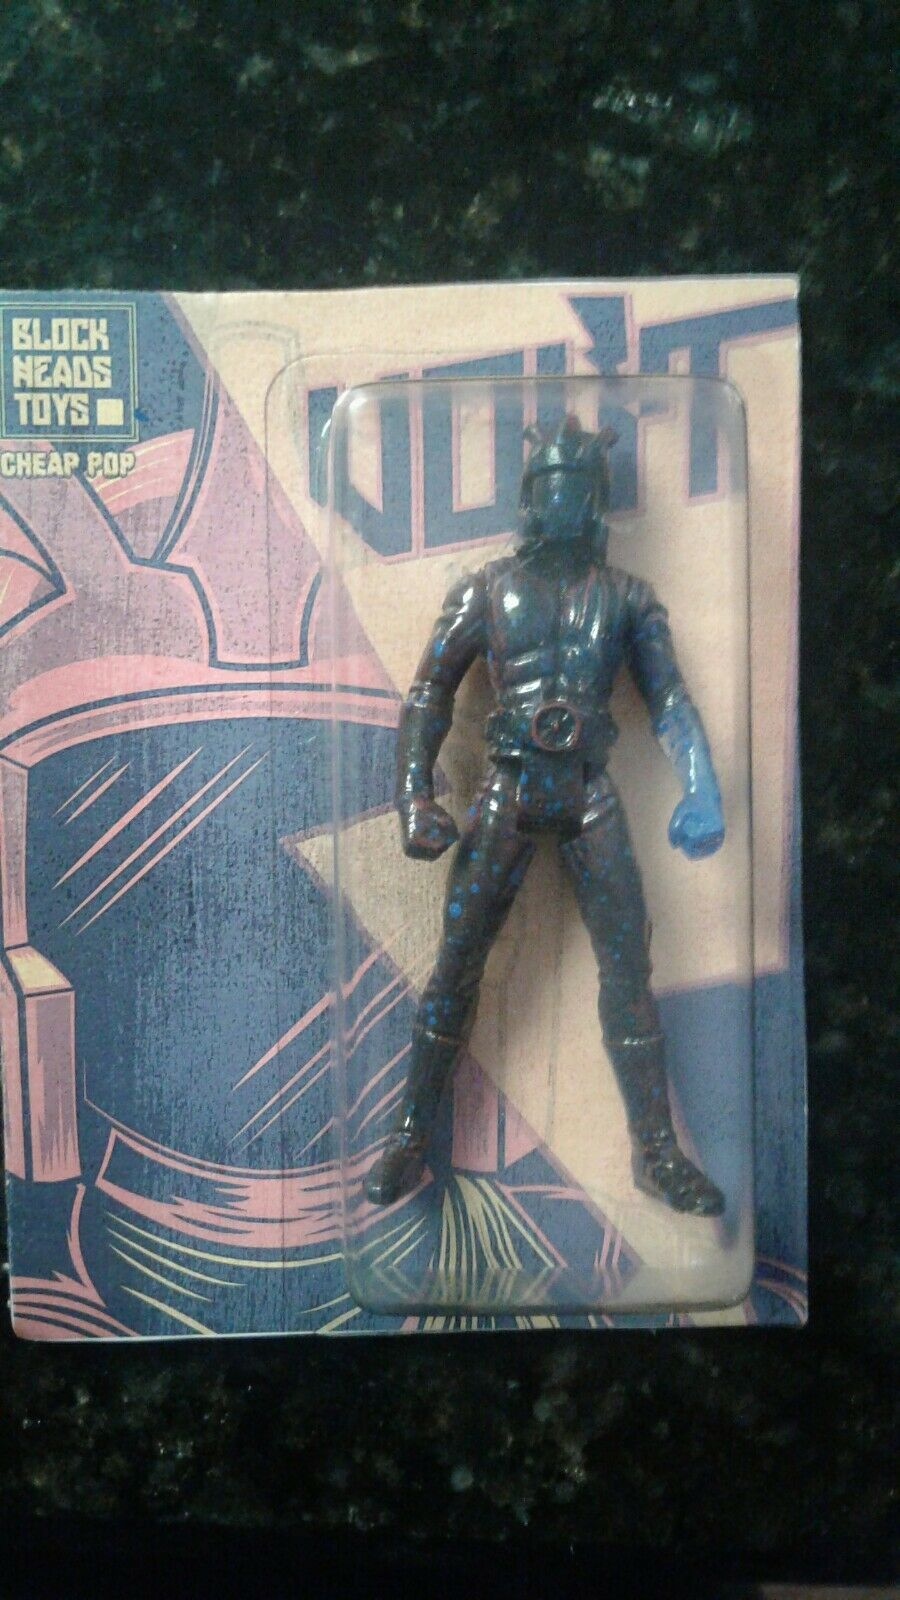 DKE VOLT 4 5 GOOD FOR YOU TOYS  NYCC DKE KILLER SPECIAL ED BOOTLEG SDCC